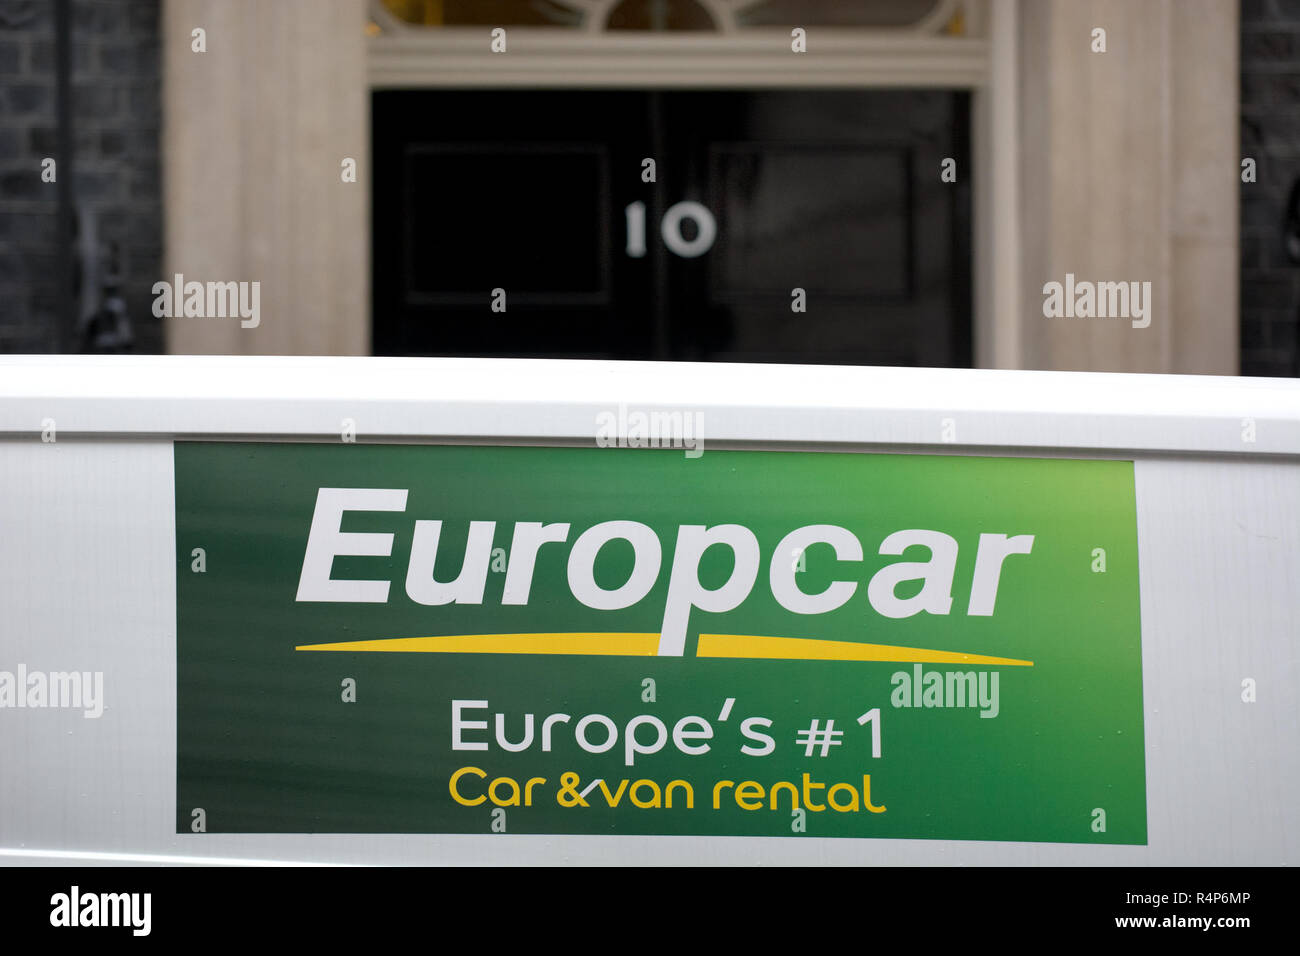 Europcar Car Rental Stock Photos Europcar Car Rental Stock Images